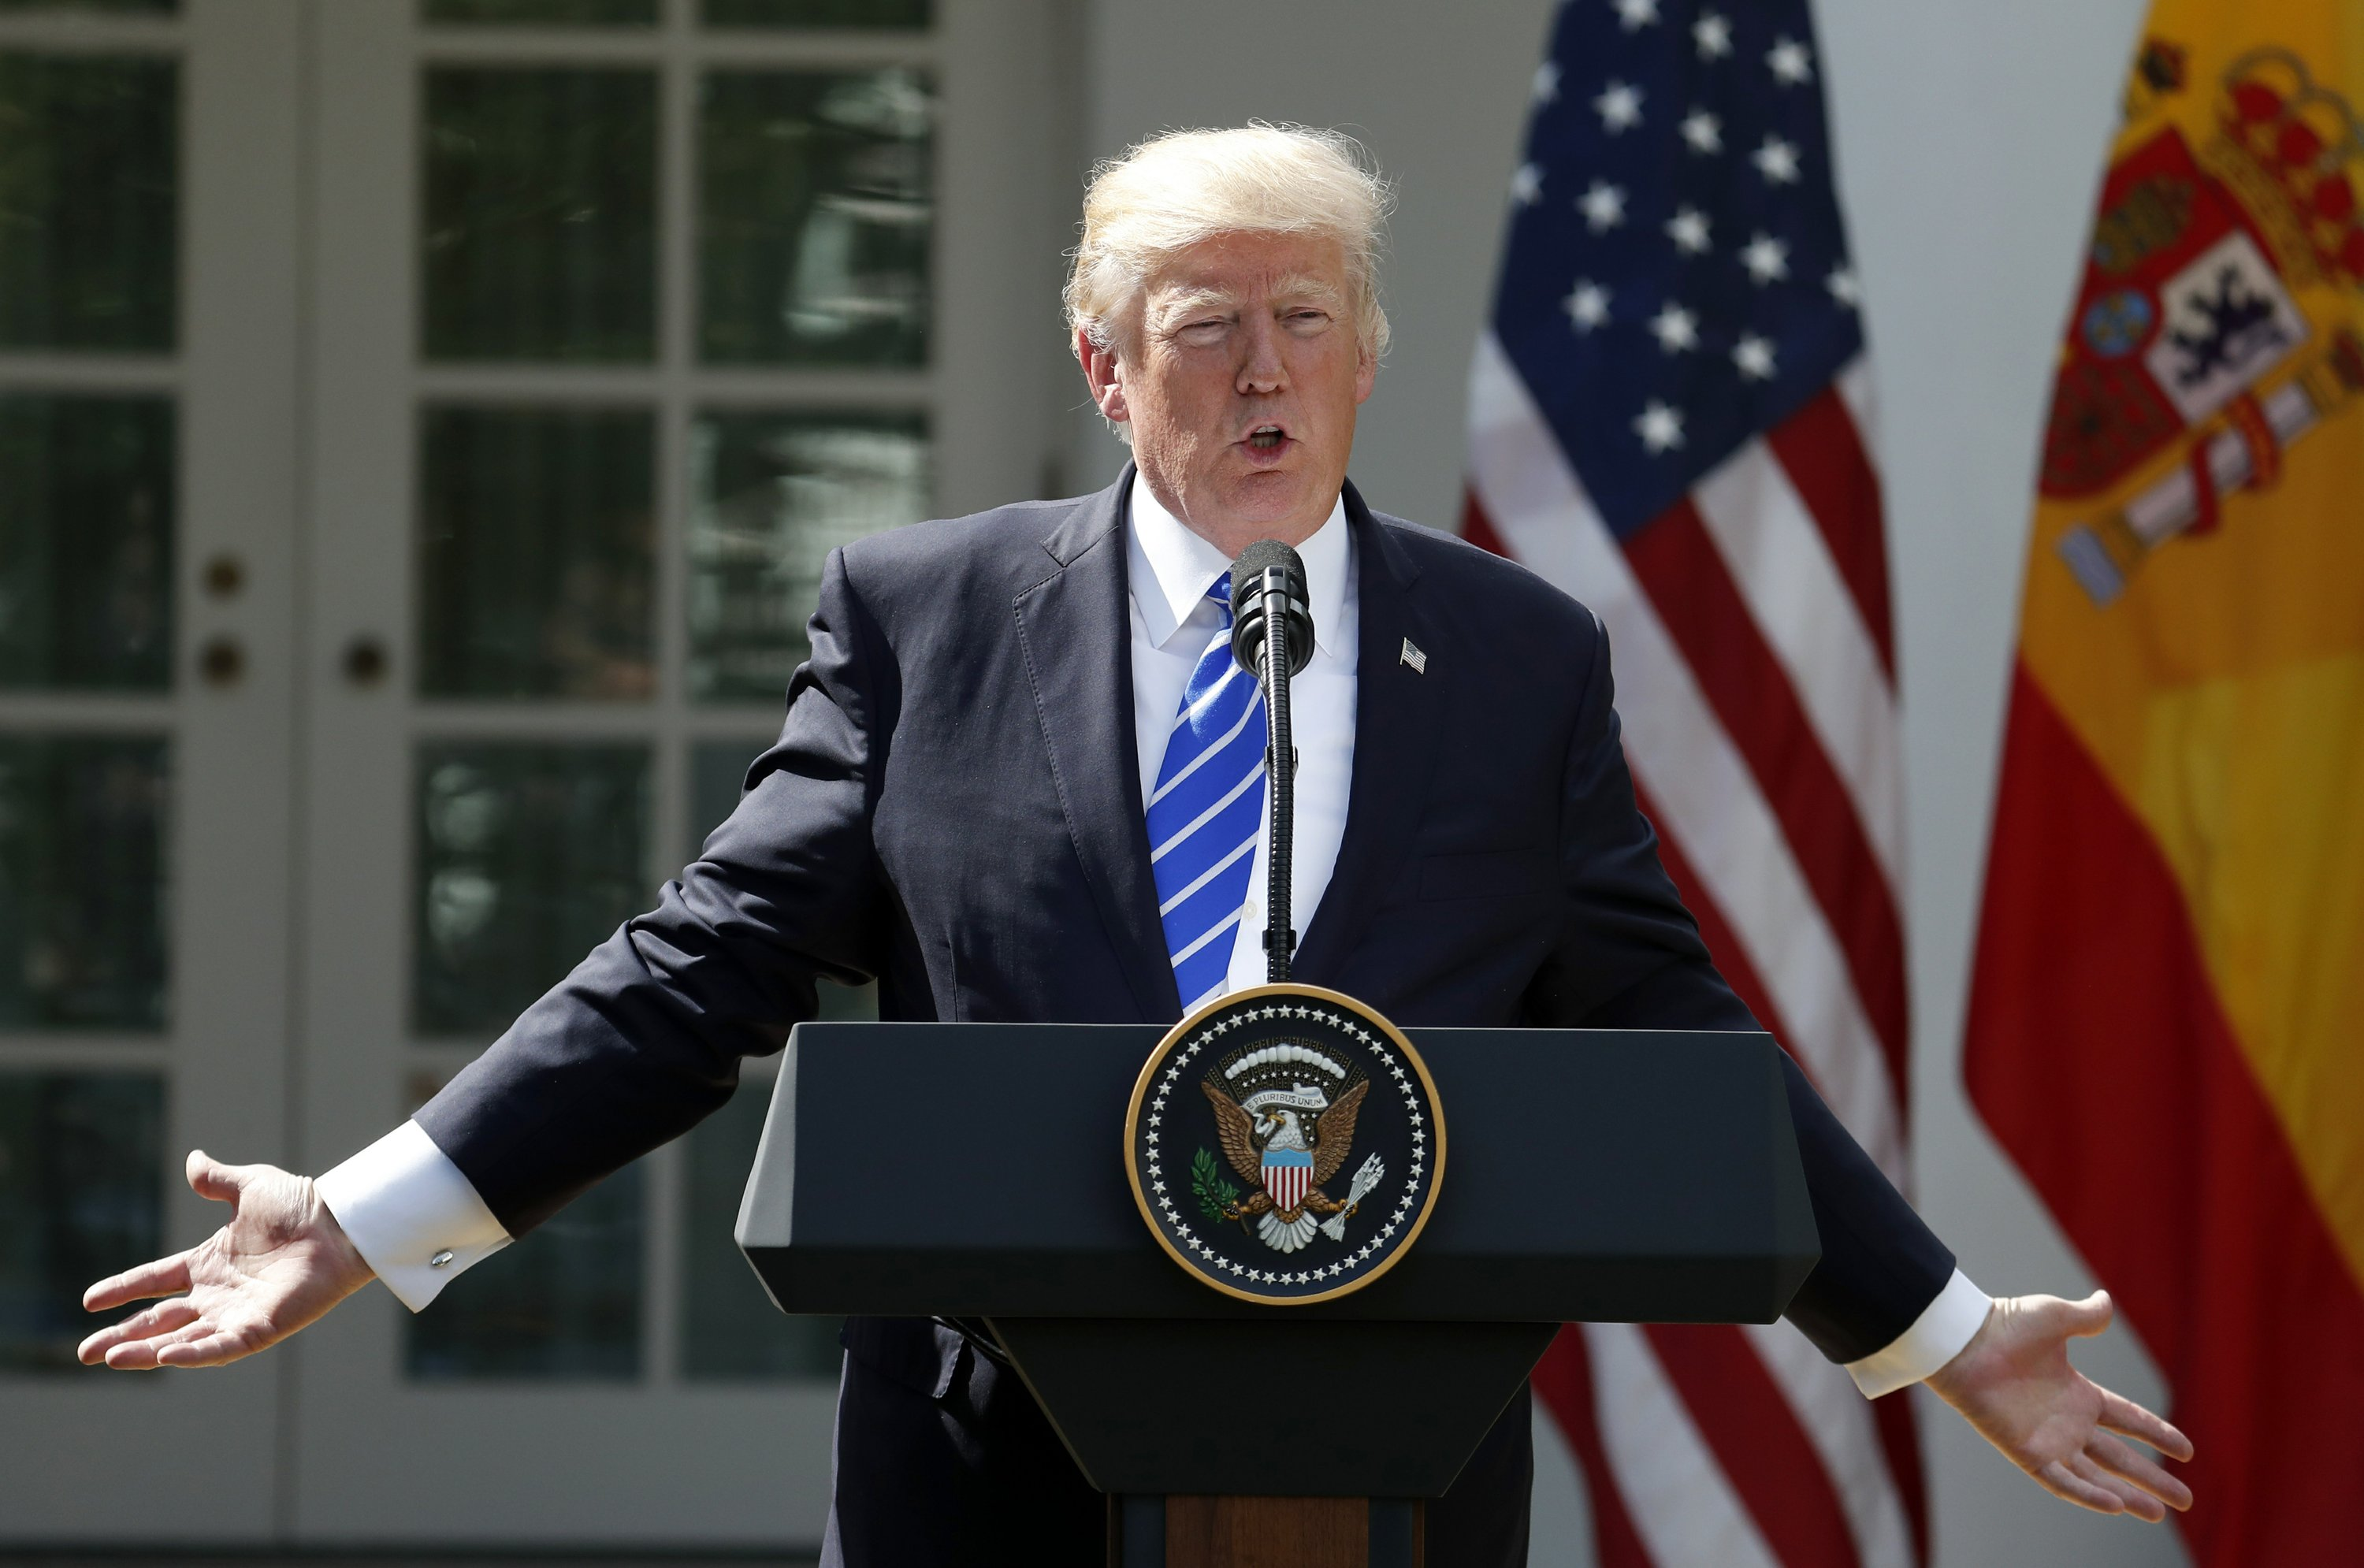 Trump misfired on tweet about Iranian missile launch